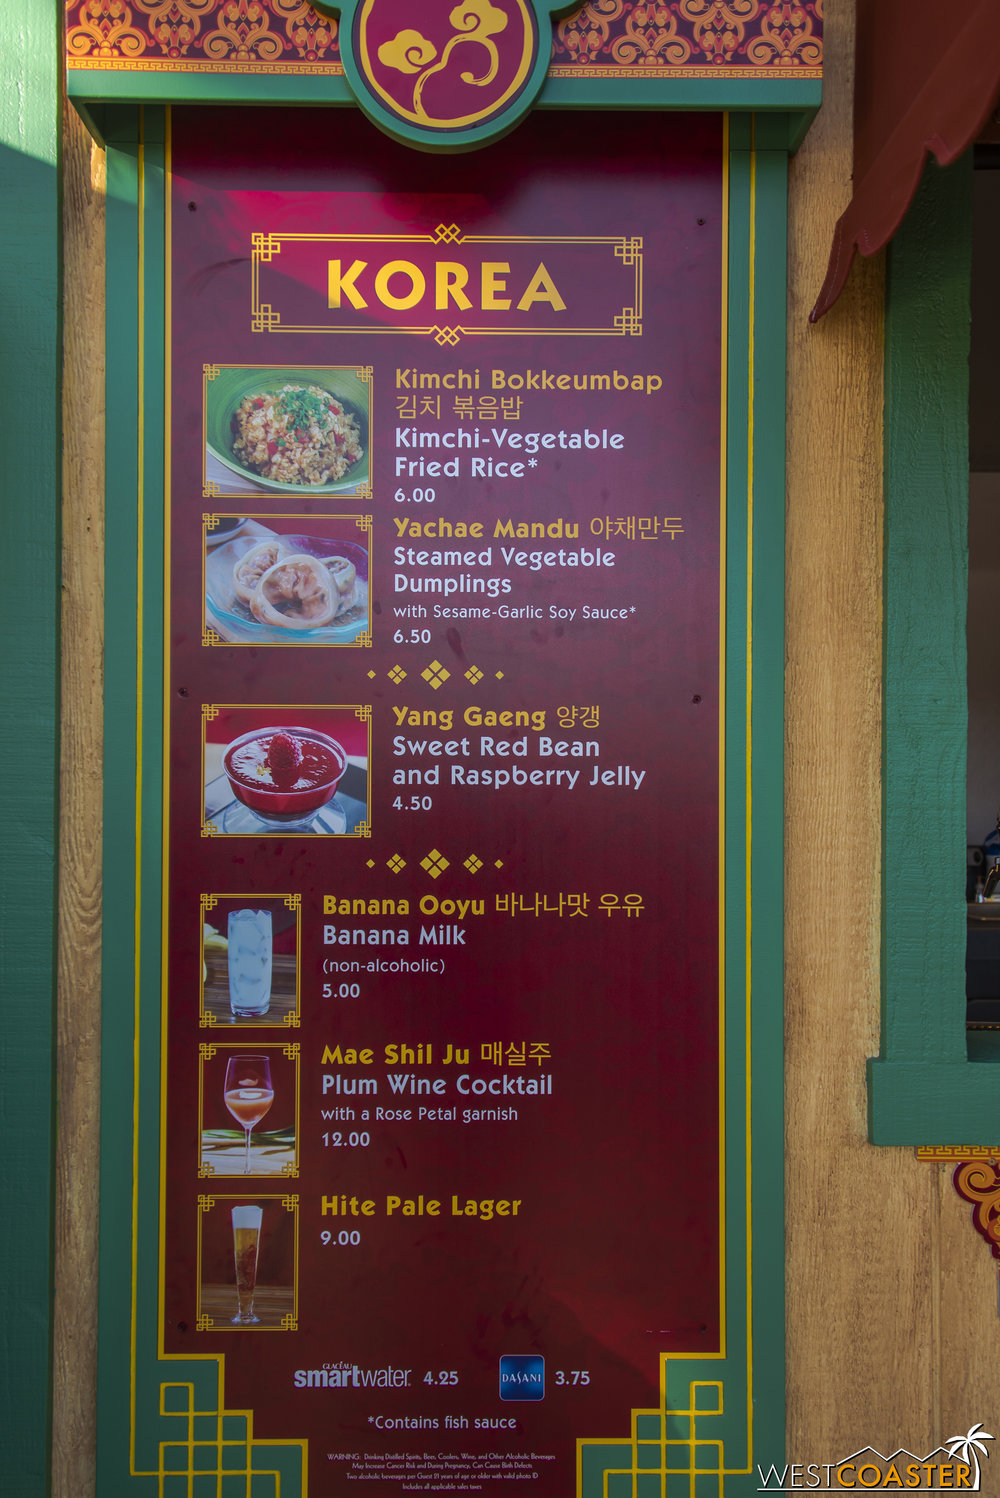 Here's the menu for the Korea booth.  The absolutely delicious Kimchi Bokkeumbap and Yachae Mandu return, though the dessert option and plum wine cocktail are different this year.